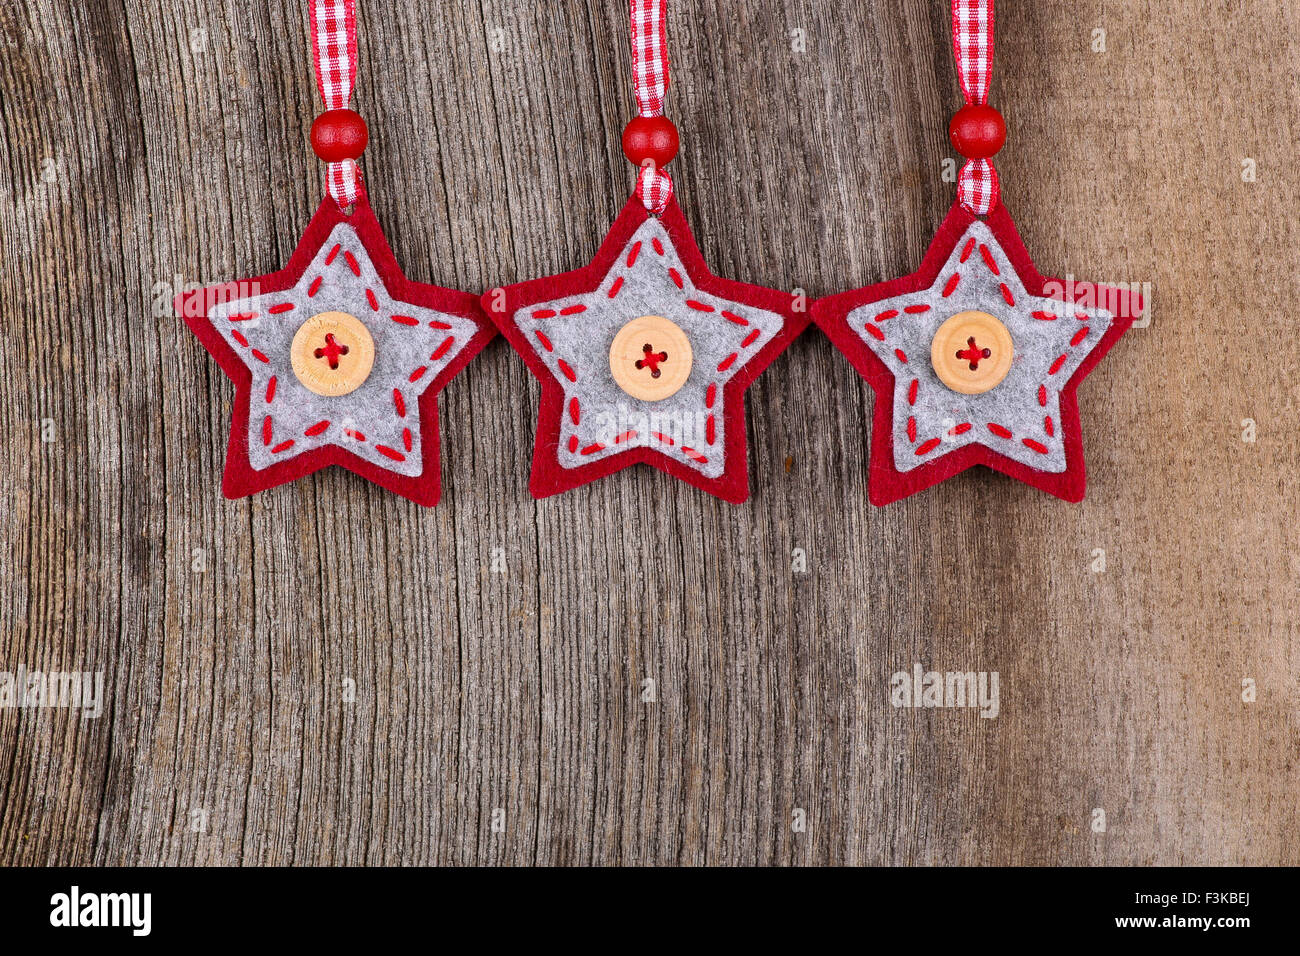 Red Fabric Star Merry Christmas Handmade Decoration Over Rustic Elm Wood Background